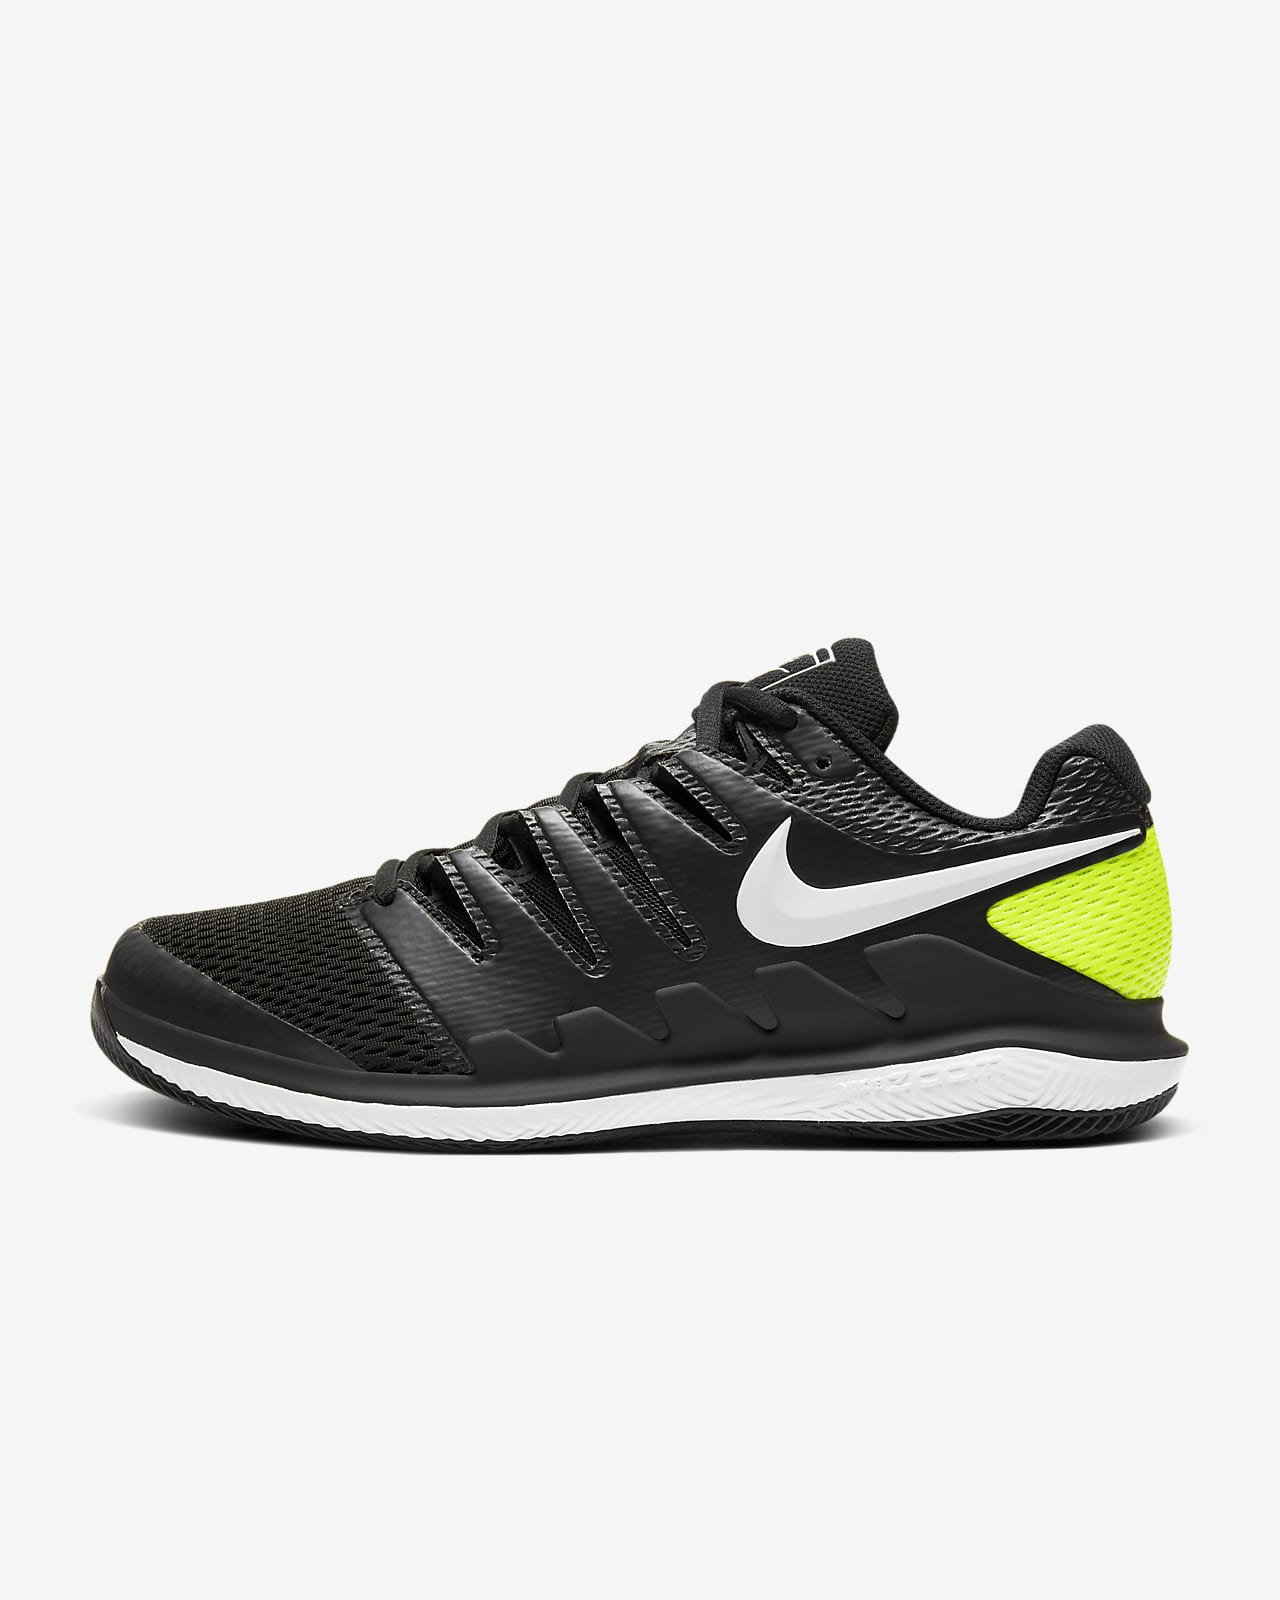 Nikecourt Air Zoom Vapor X Men S Hard Court Tennis Shoe Nike Ca